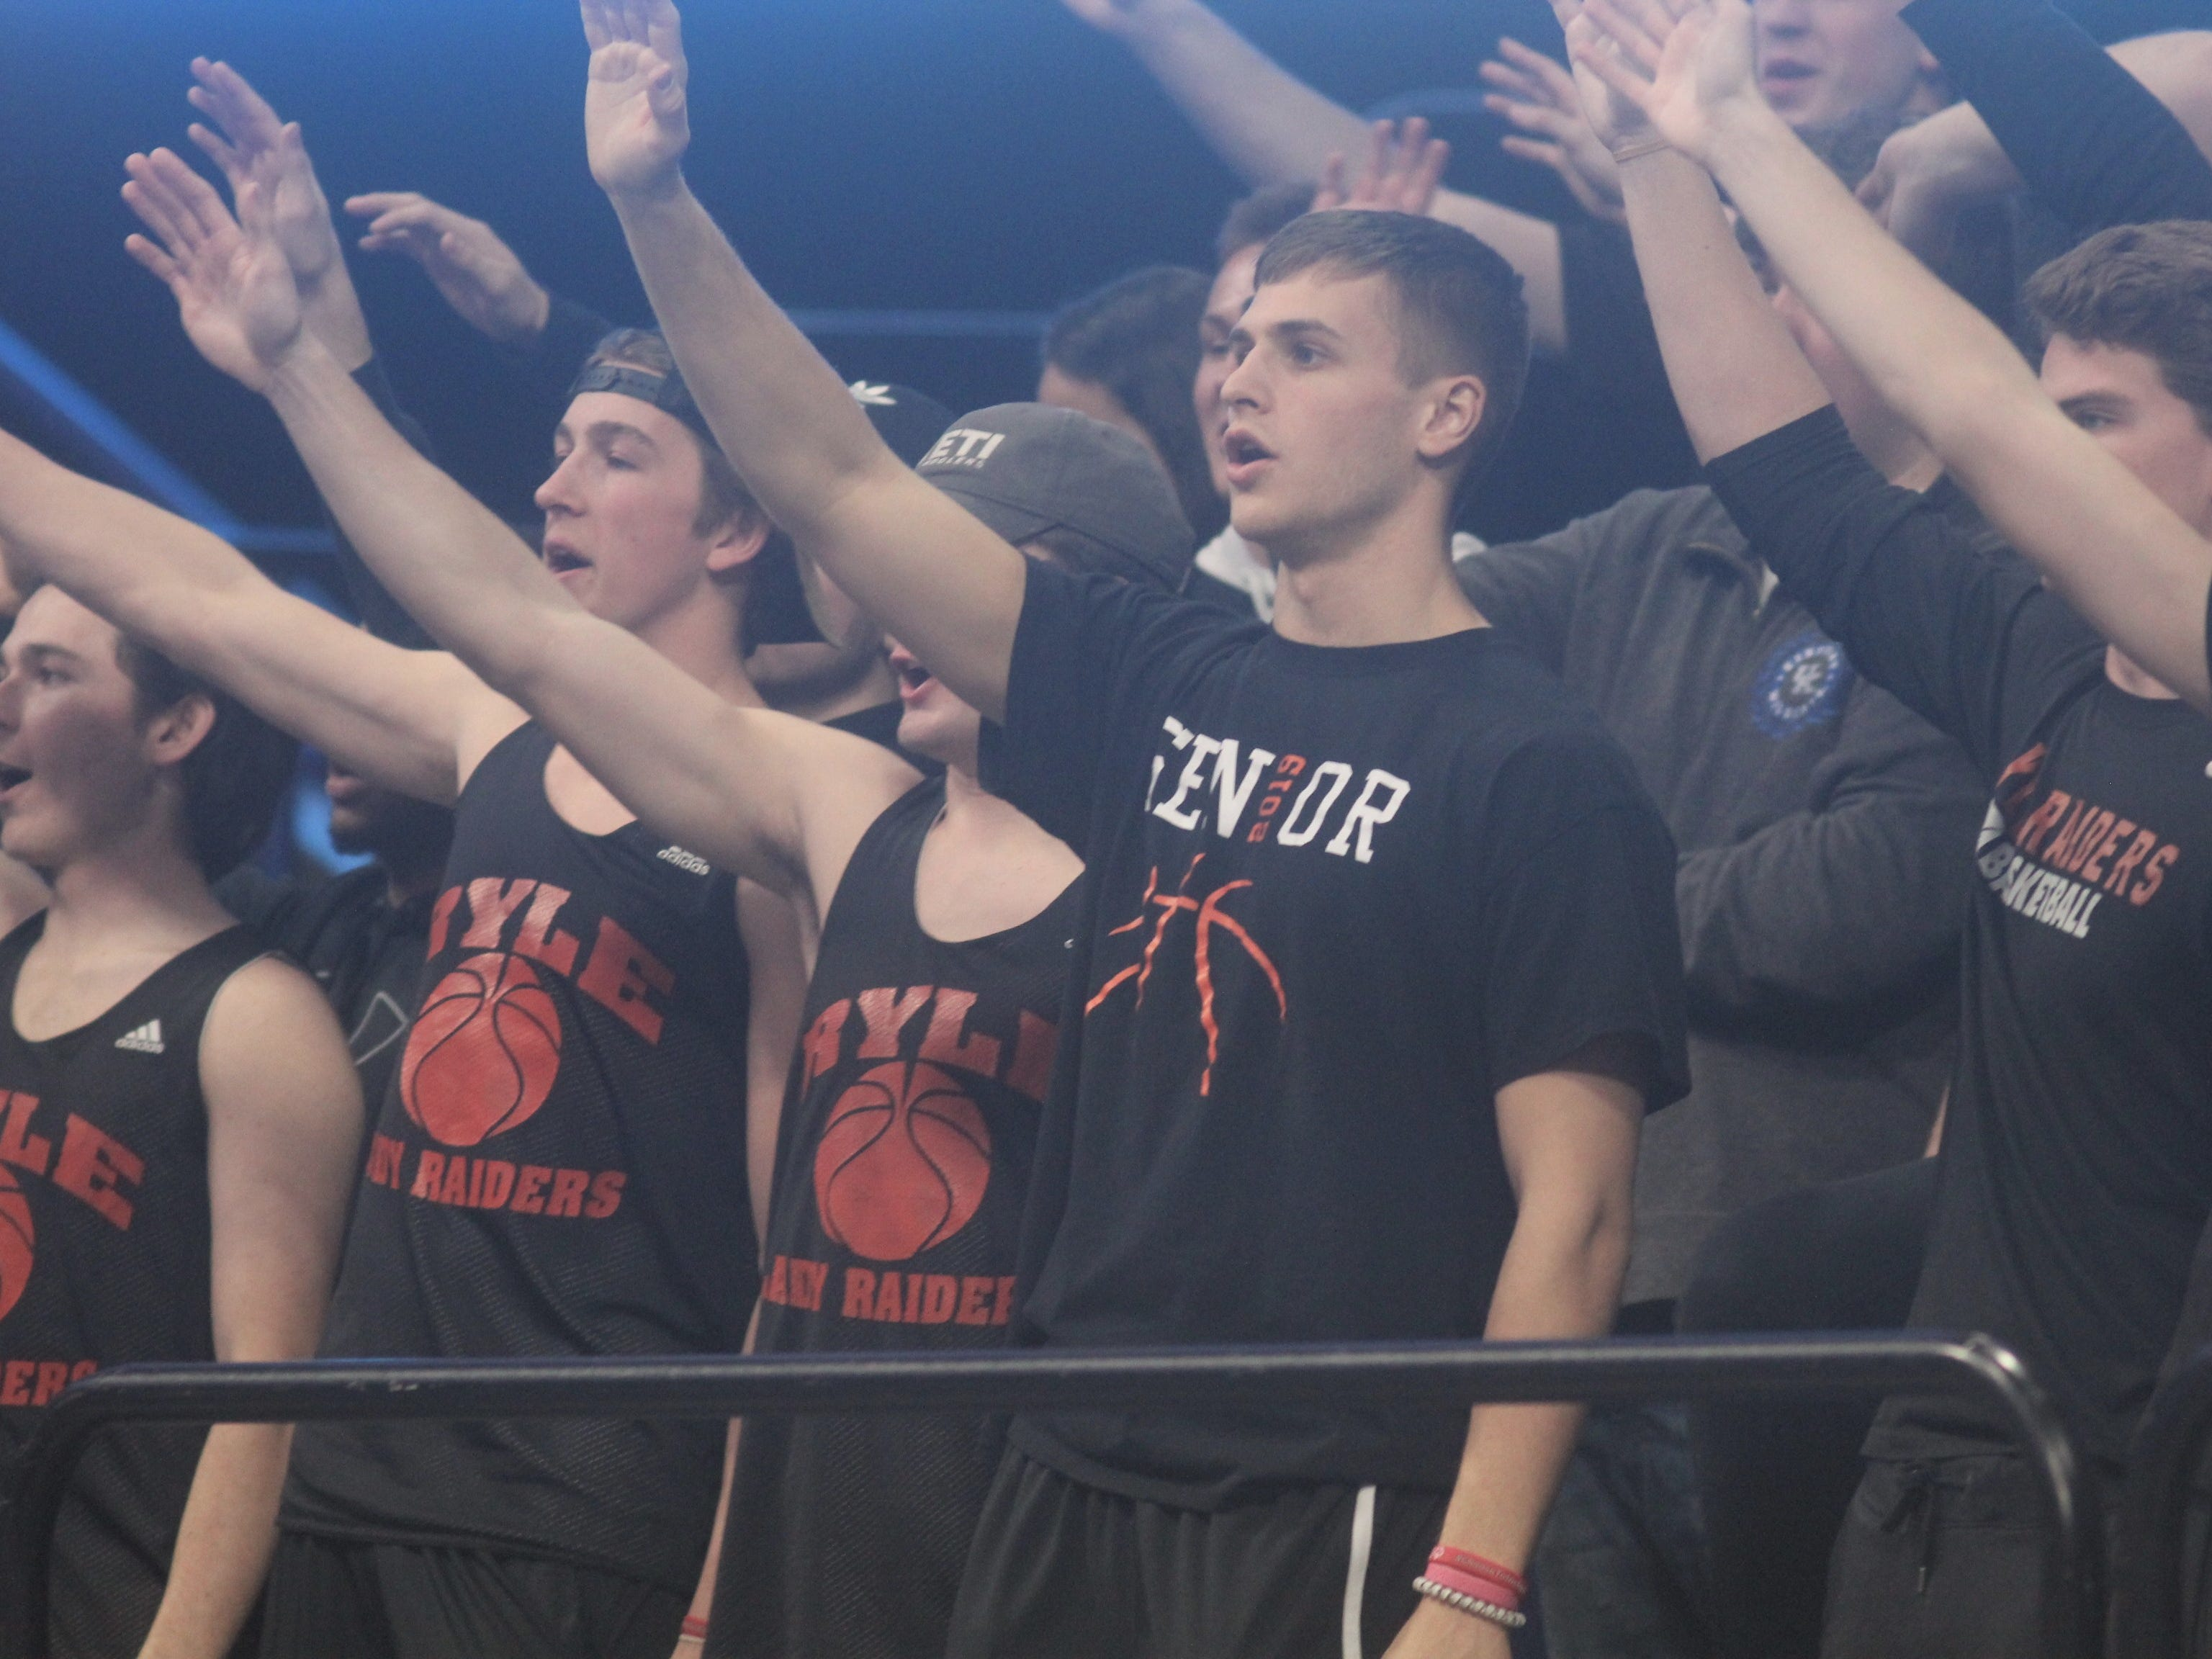 Ryle students cheer on their Raiders as Ryle defeated George Rogers Clark 64-51 in the state quarterfinals of the KHSAA Sweet 16 girls basketball tournament March 15, 2019 at Rupp Arena, Lexington KY.